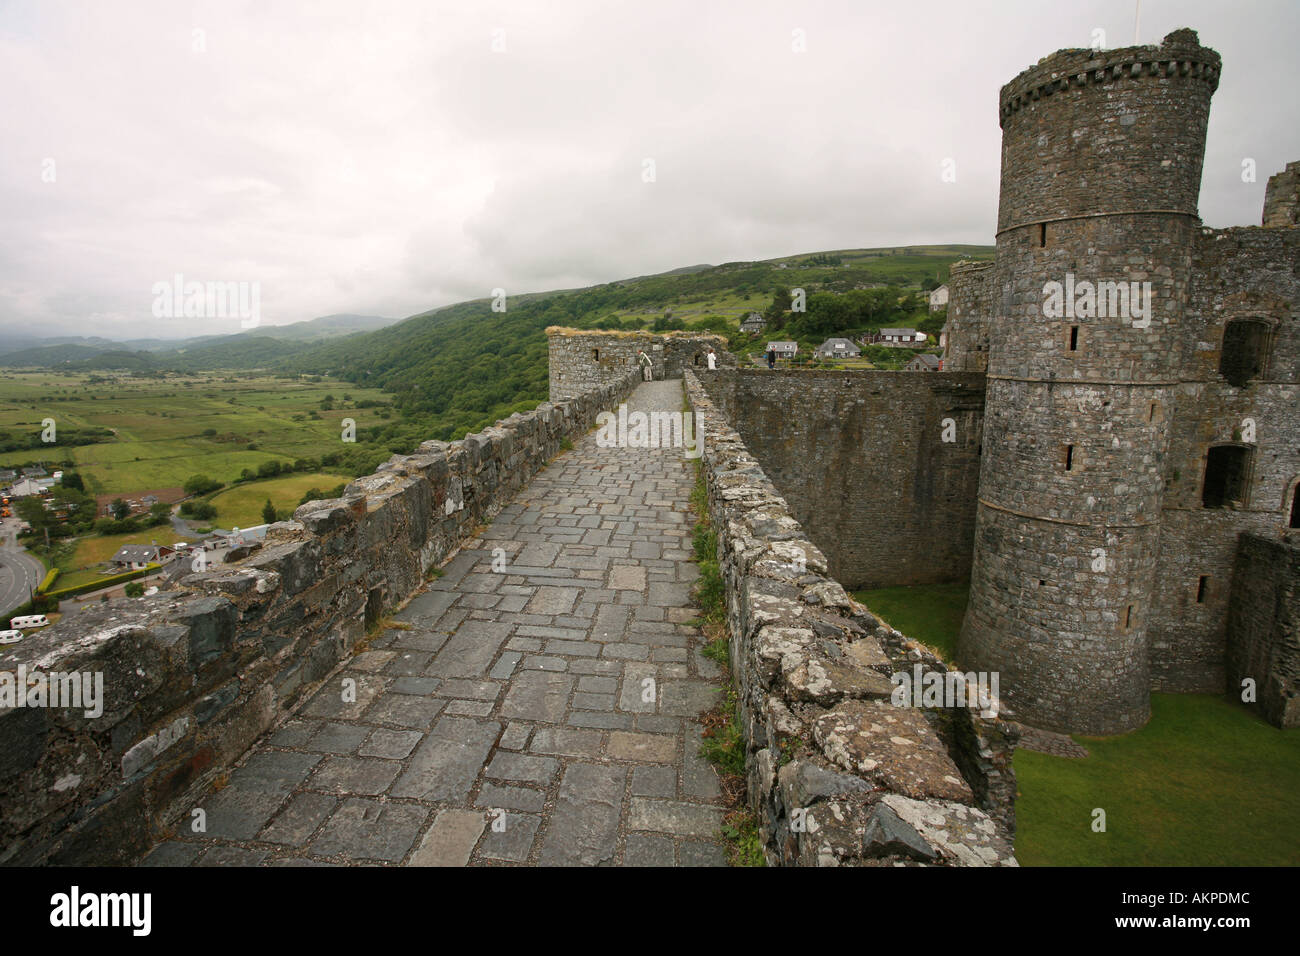 Aerial view of battlements ramparts and stone walls of ...